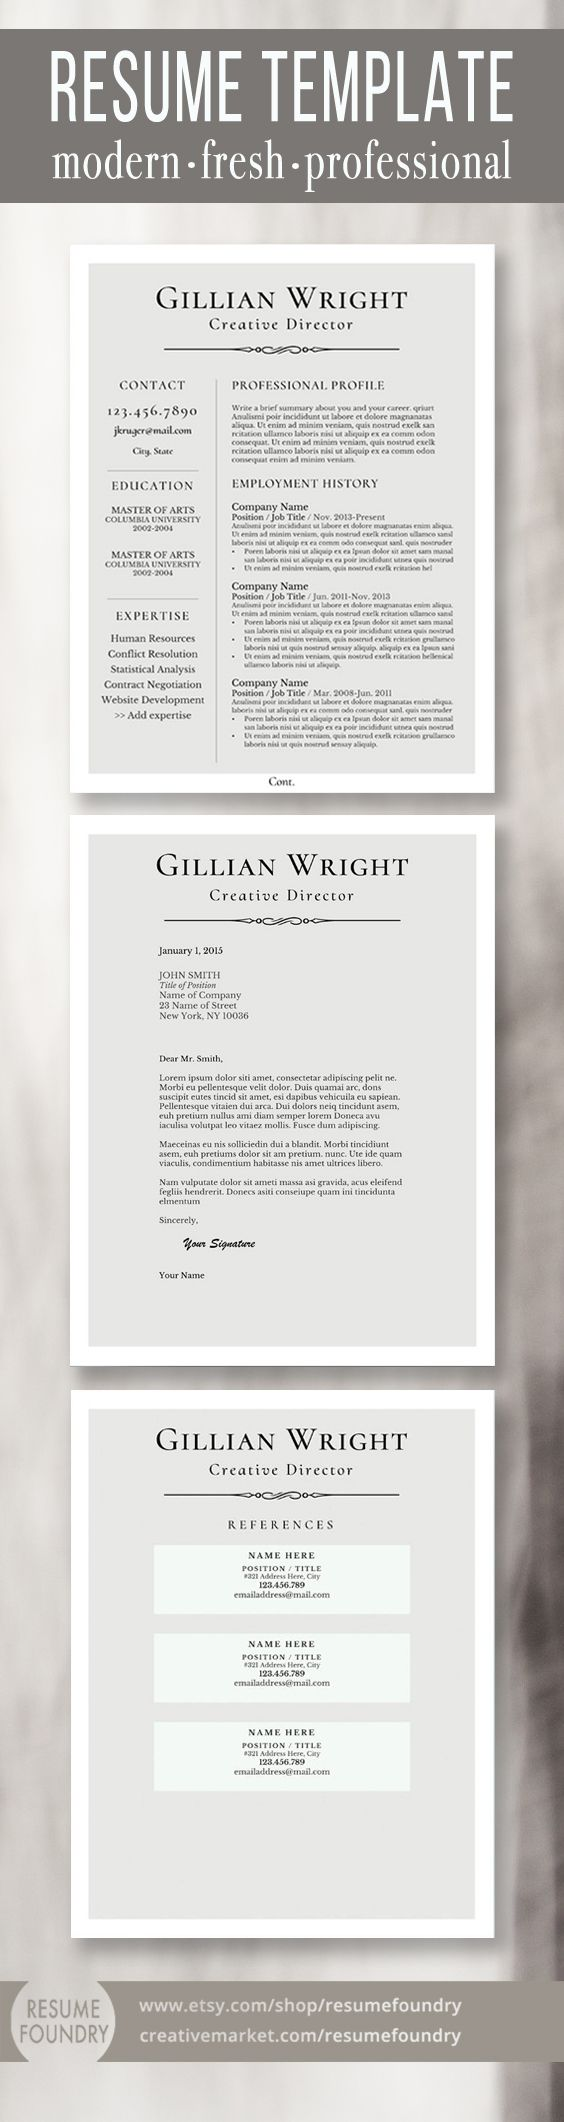 Resume Design Elegant Resume Template Package Includes One Two